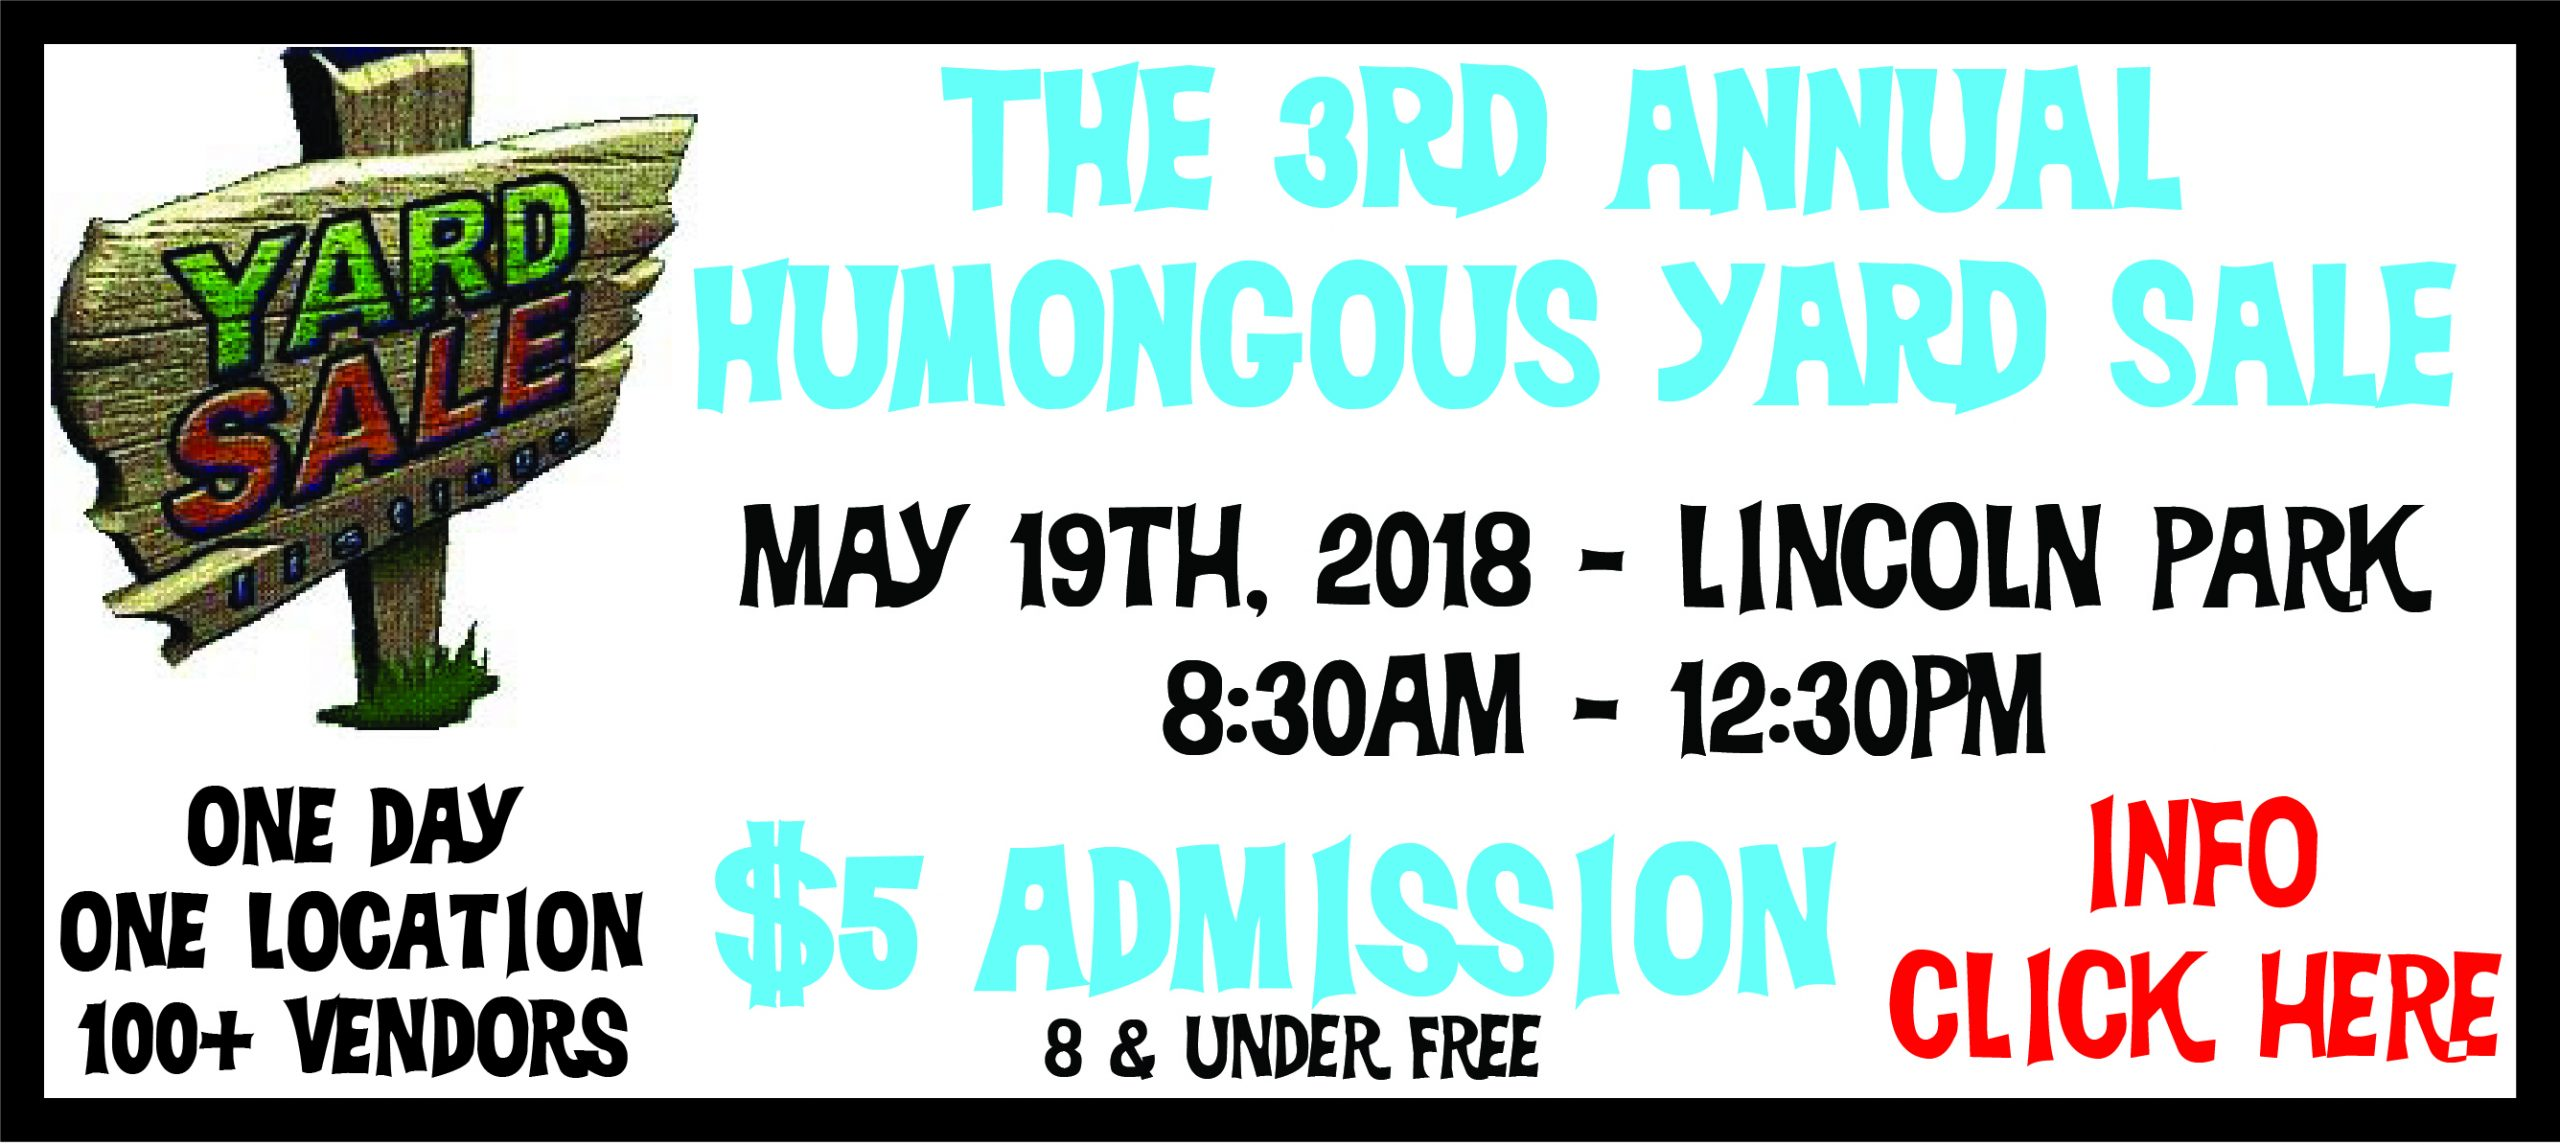 Feature: http://www.1039theplanet.com/syn/820/4410/humongous-yard-sale/